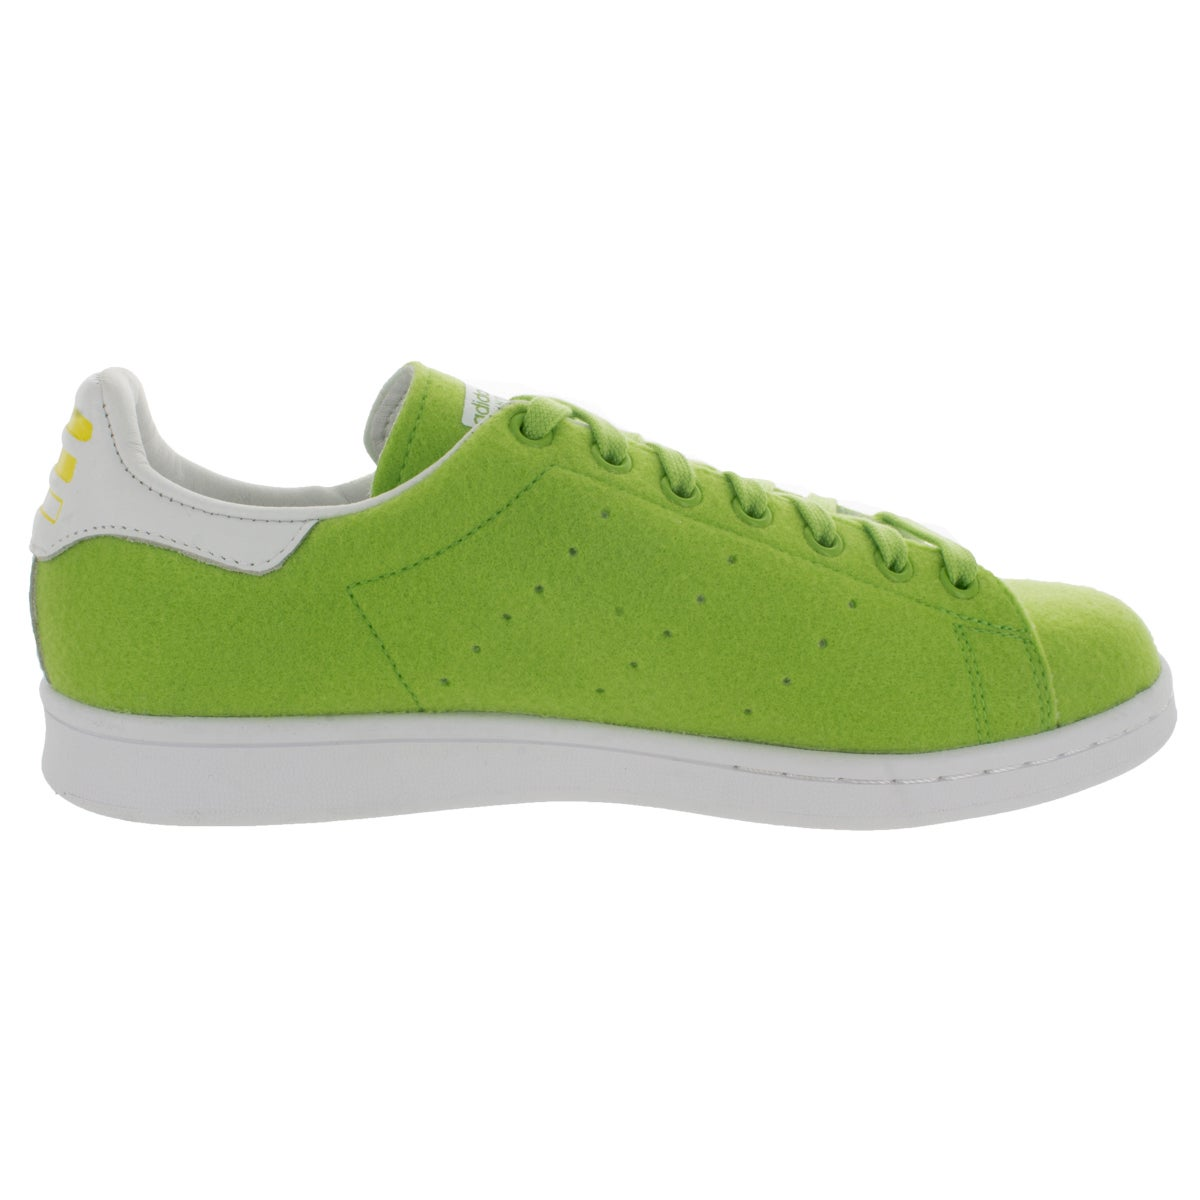 20c4a3259381 Shop Adidas Men s Pw Stan Smith Tns Originals Green Green White Casual Shoe  - Free Shipping Today - Overstock.com - 12319892